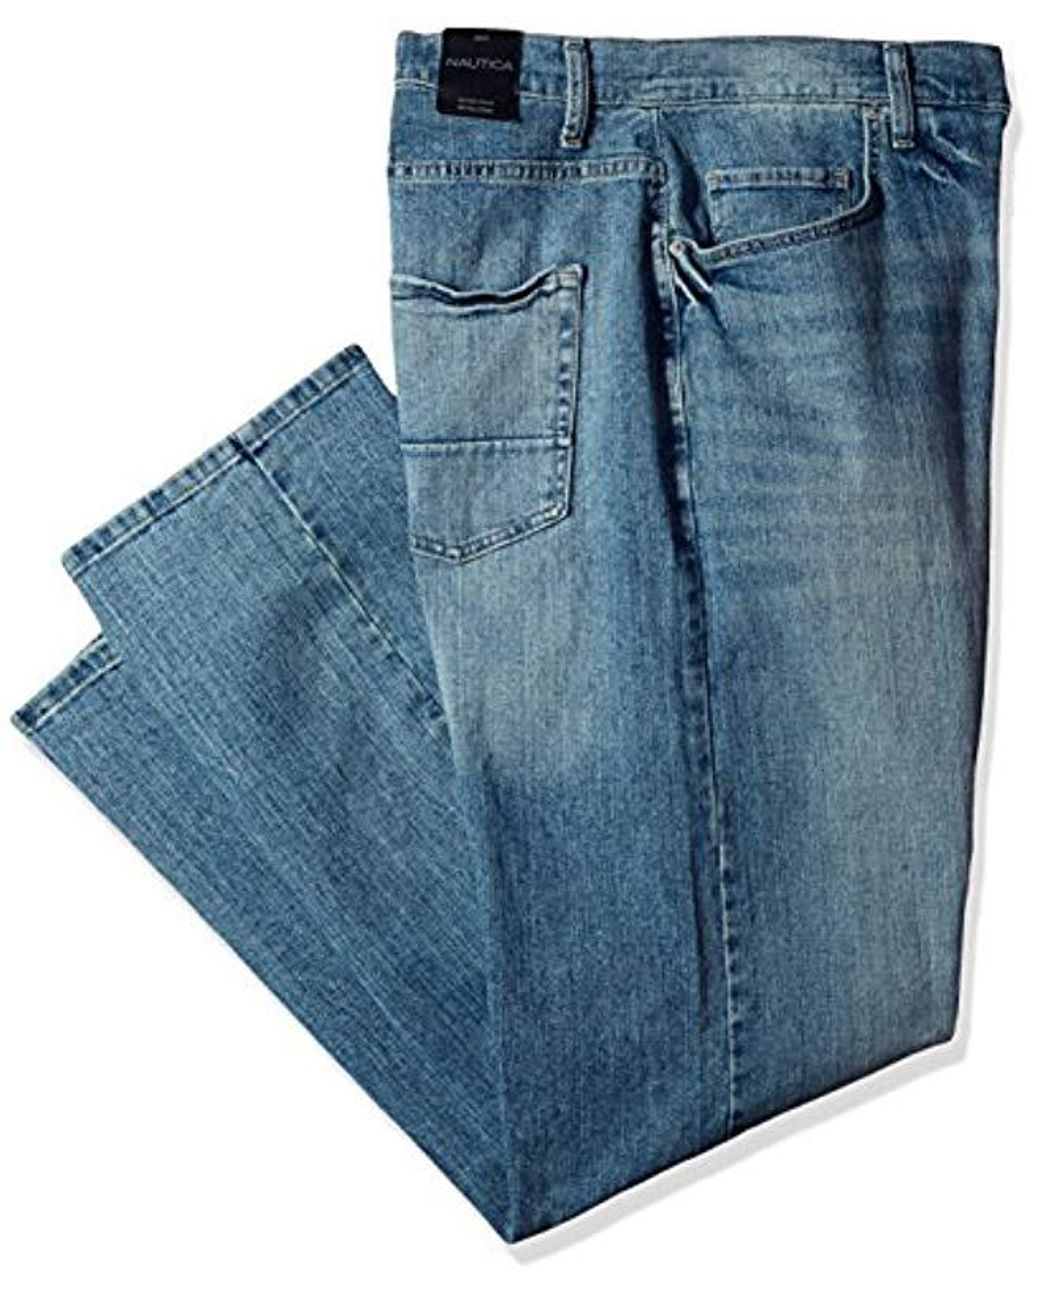 FULL BLUE 5 POCKET RELAX FIT JEANS BIG AND TALL Light Wash